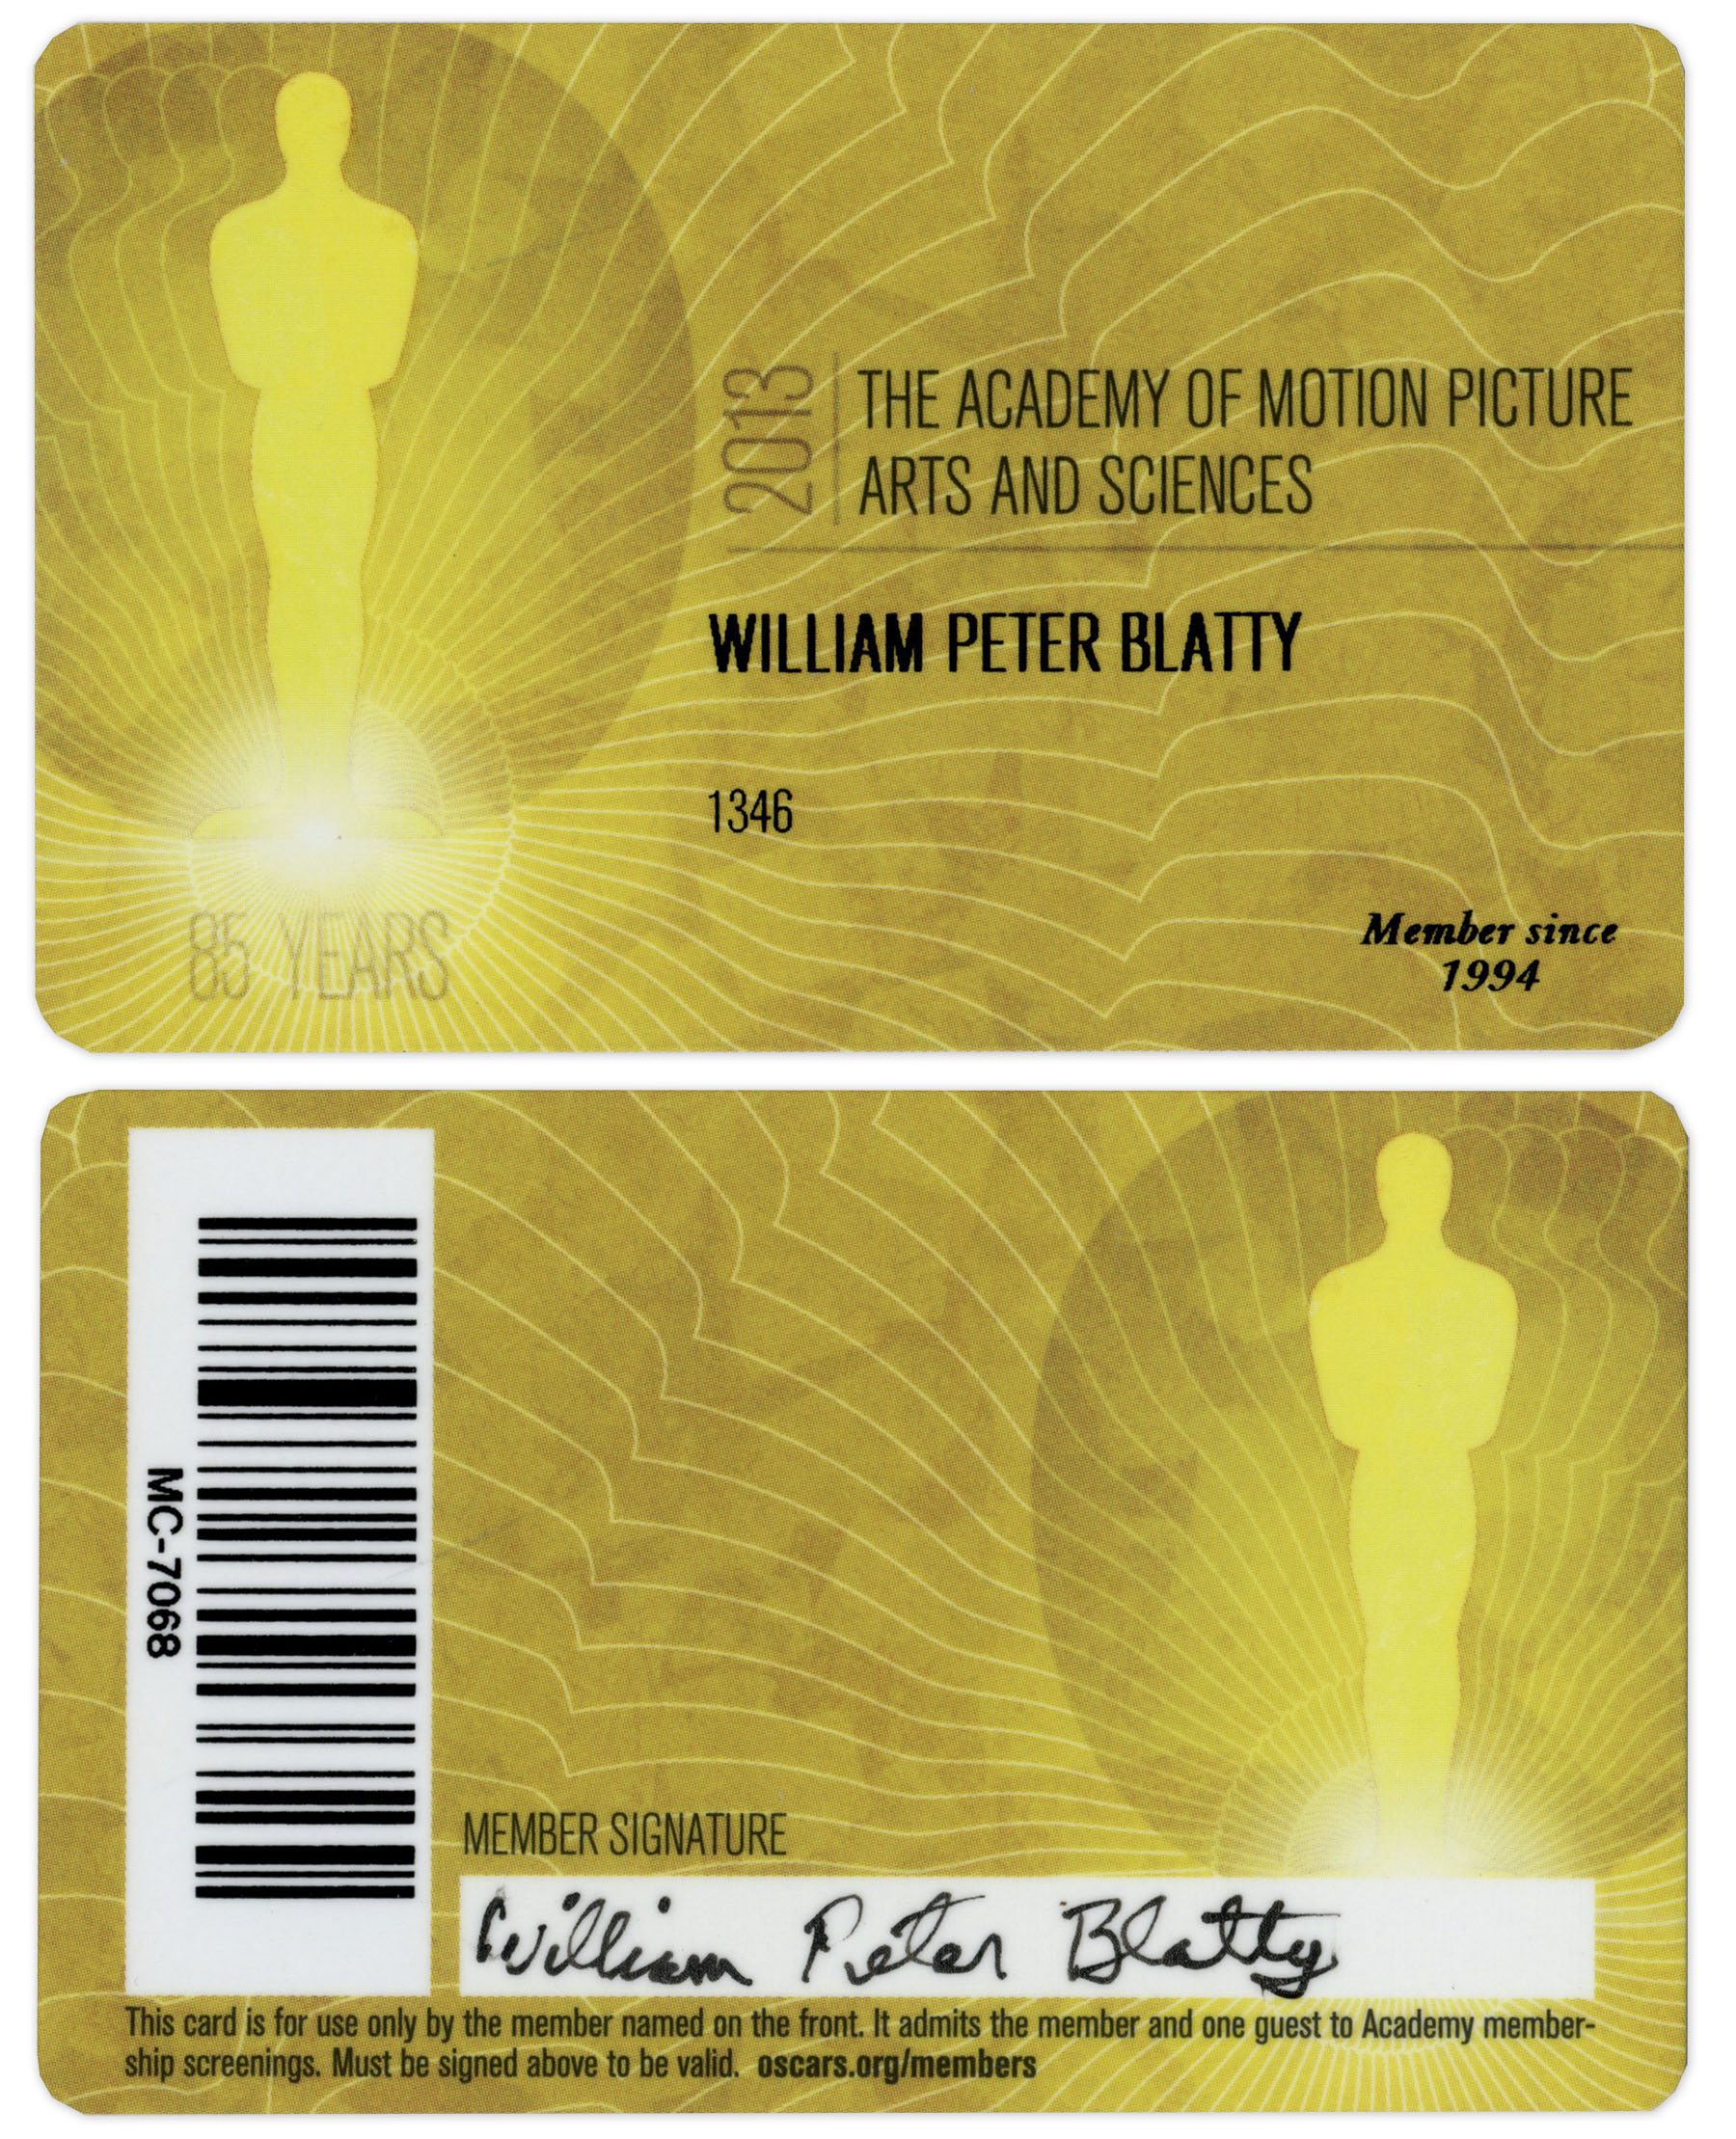 Lot 42 - William Peter Blatty's official AMPAS membership card, signed in pen. Plastic card reads ''2013 /